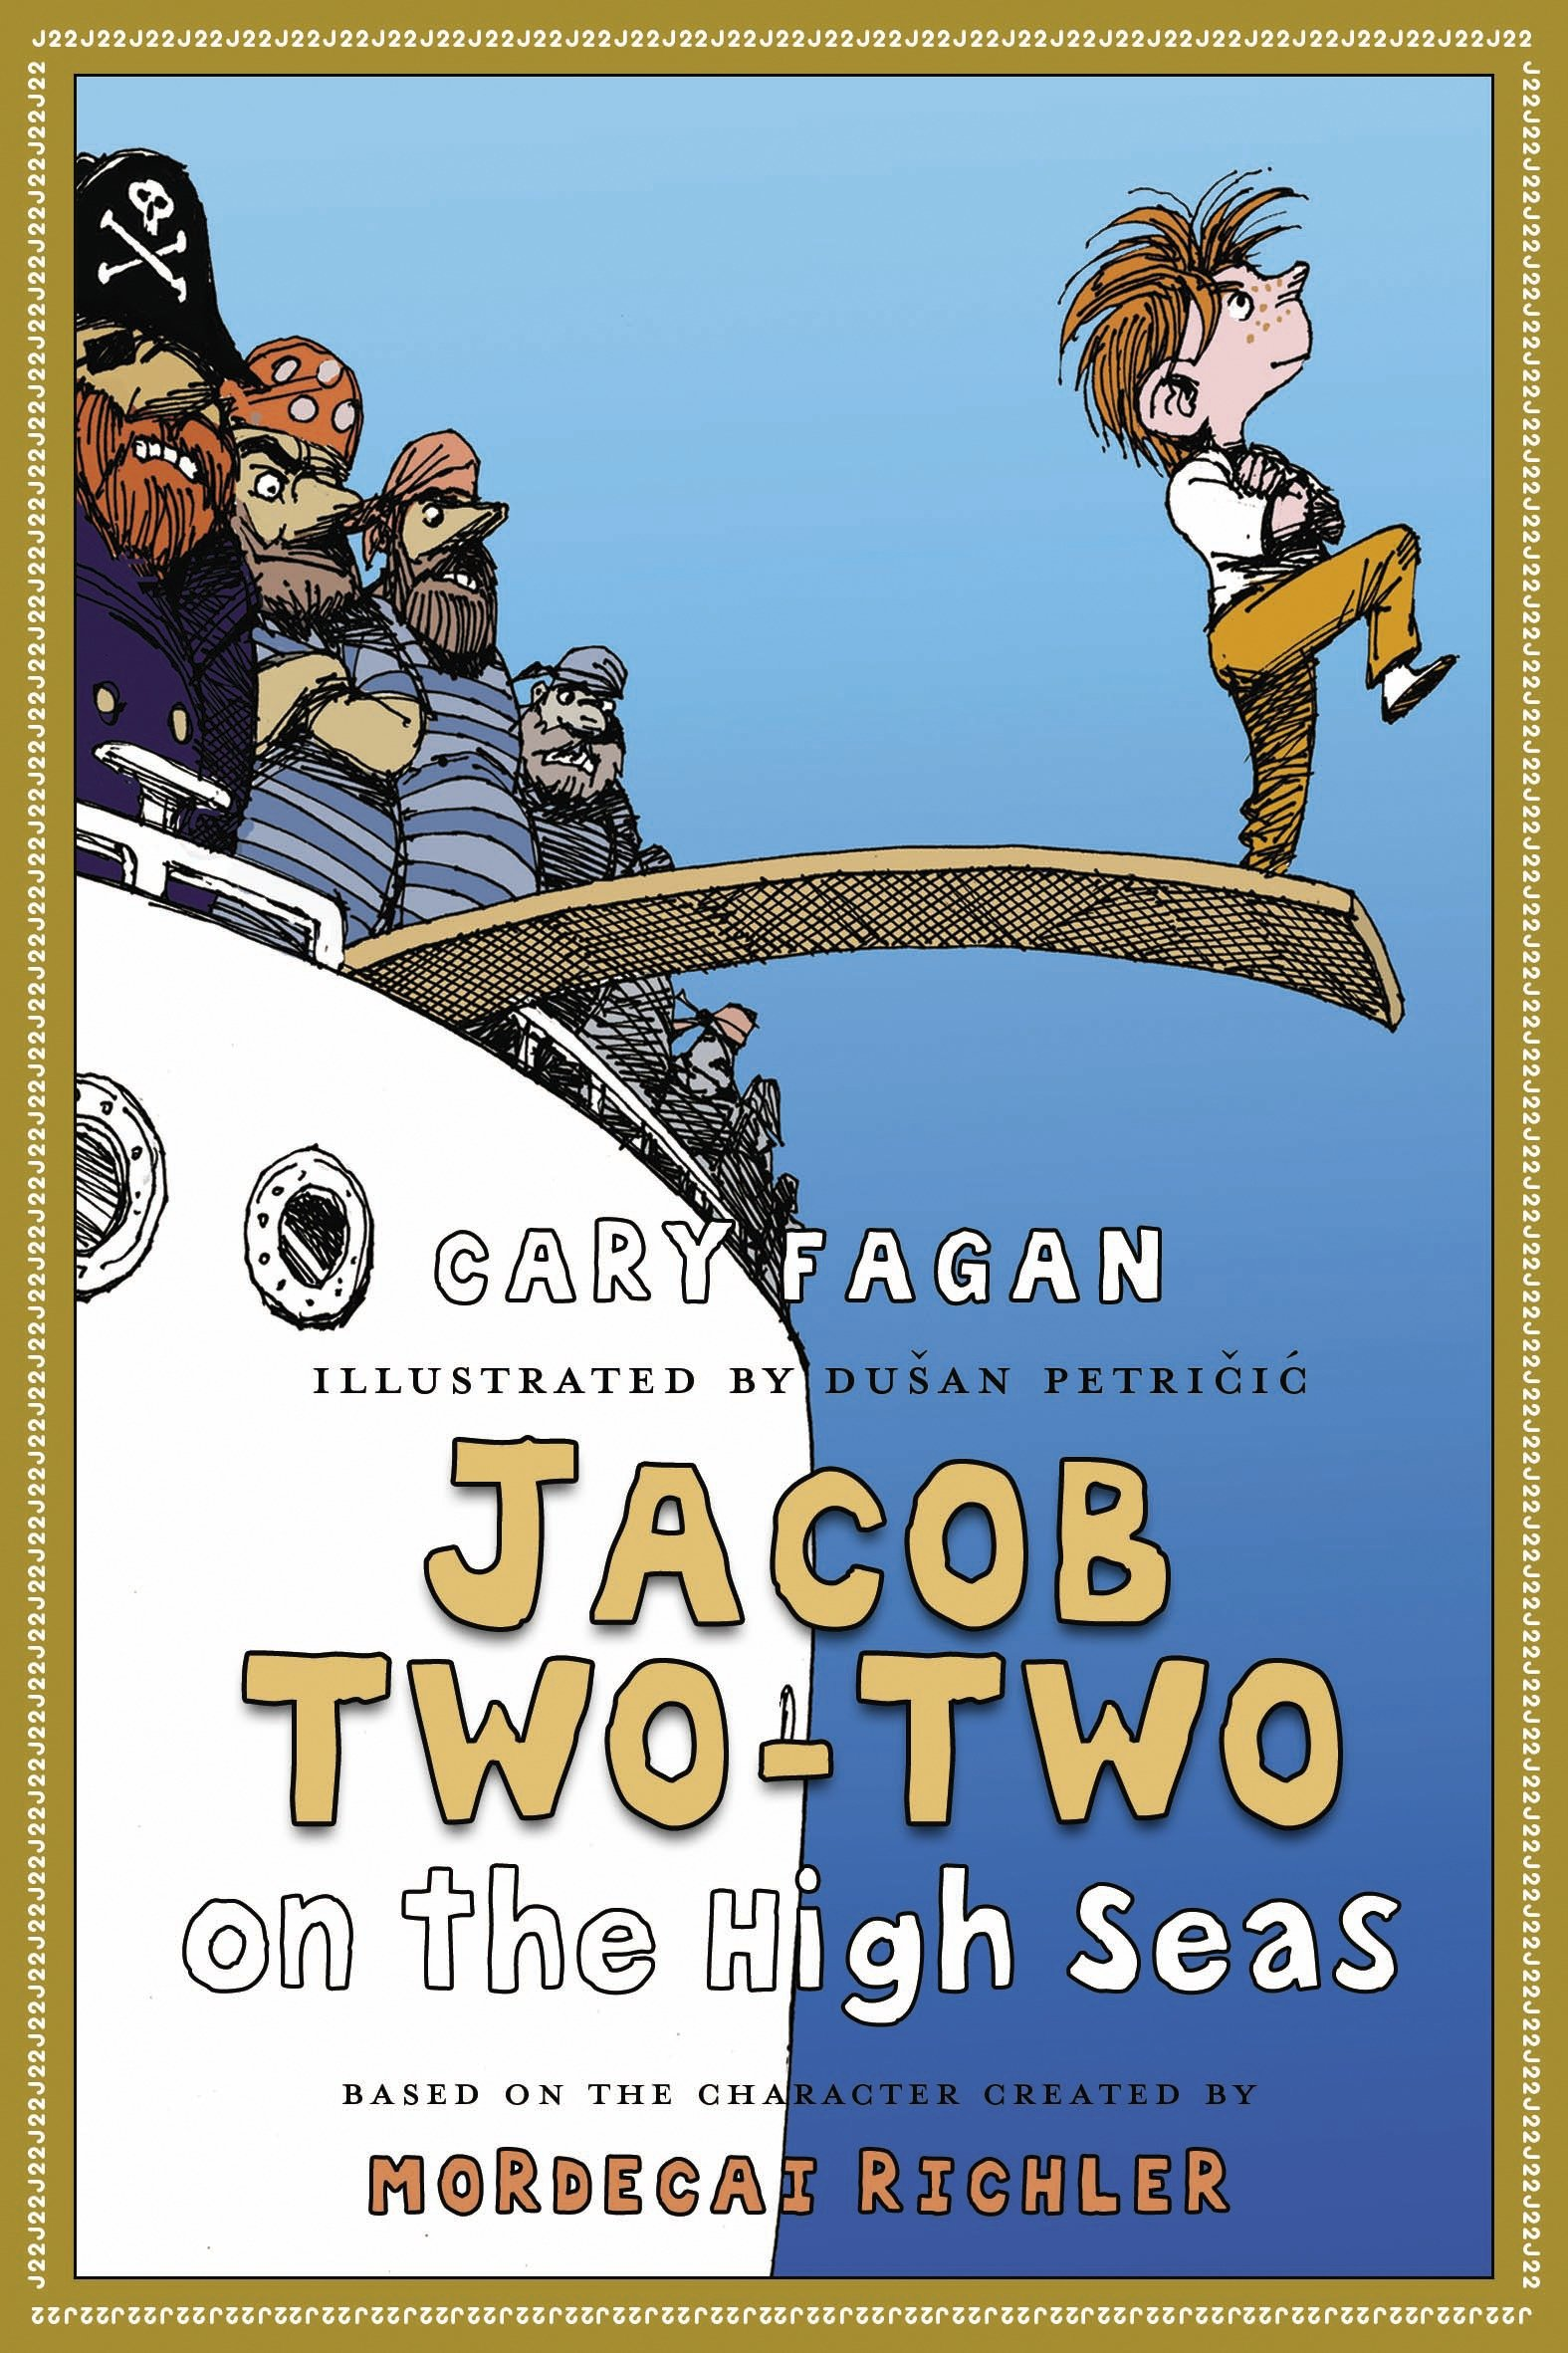 Cover Image of Jacob Two-Two on the High Seas